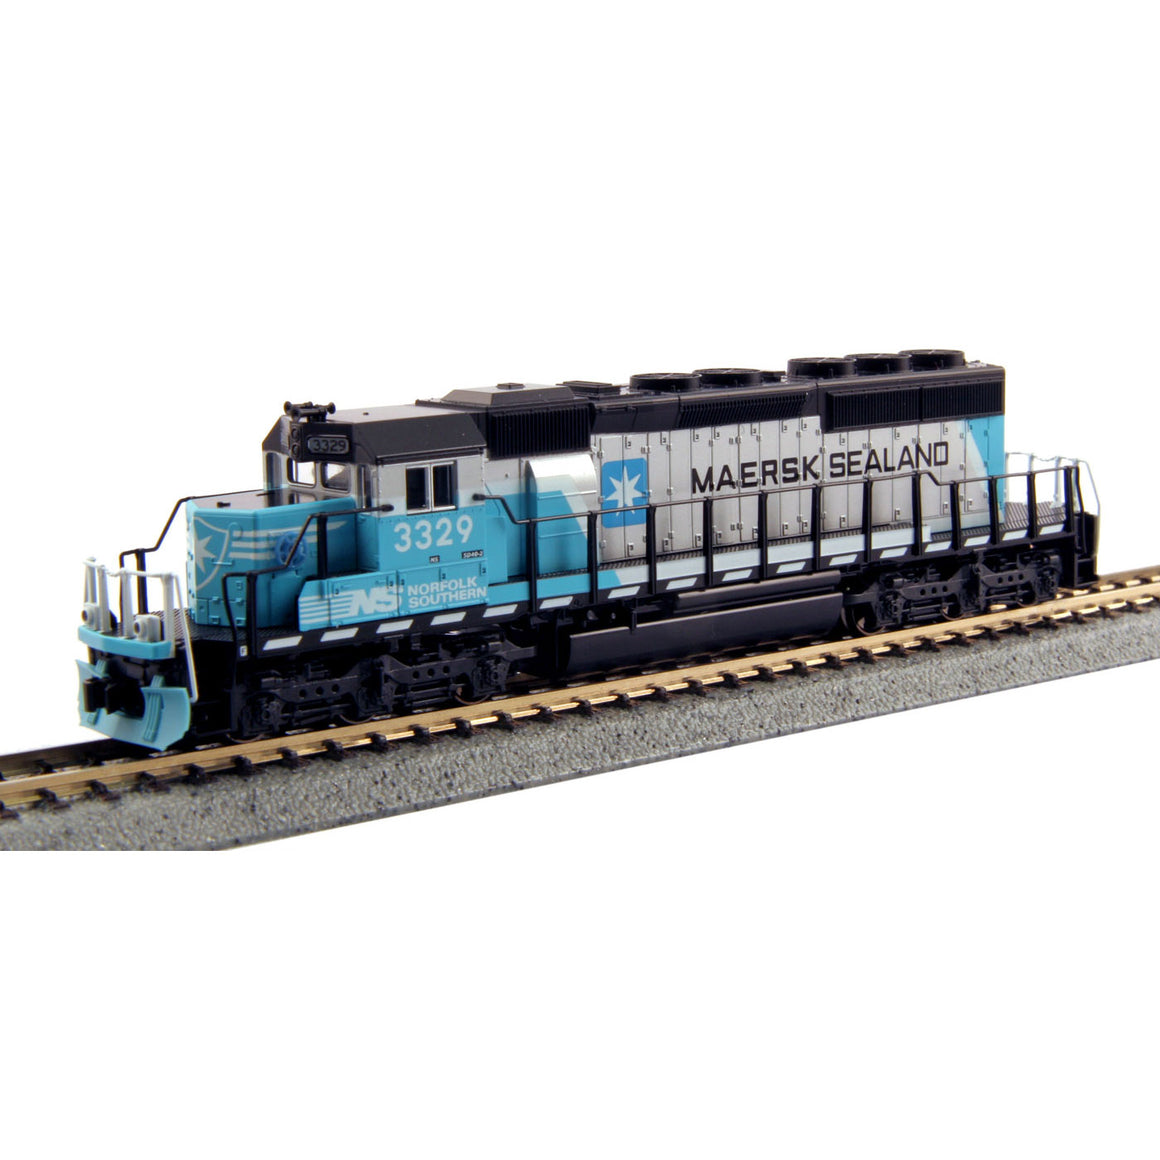 N Scale: EMD SD40-2 Mid-Production - DCC Equipped - Norfolk Southern 'Maersk'